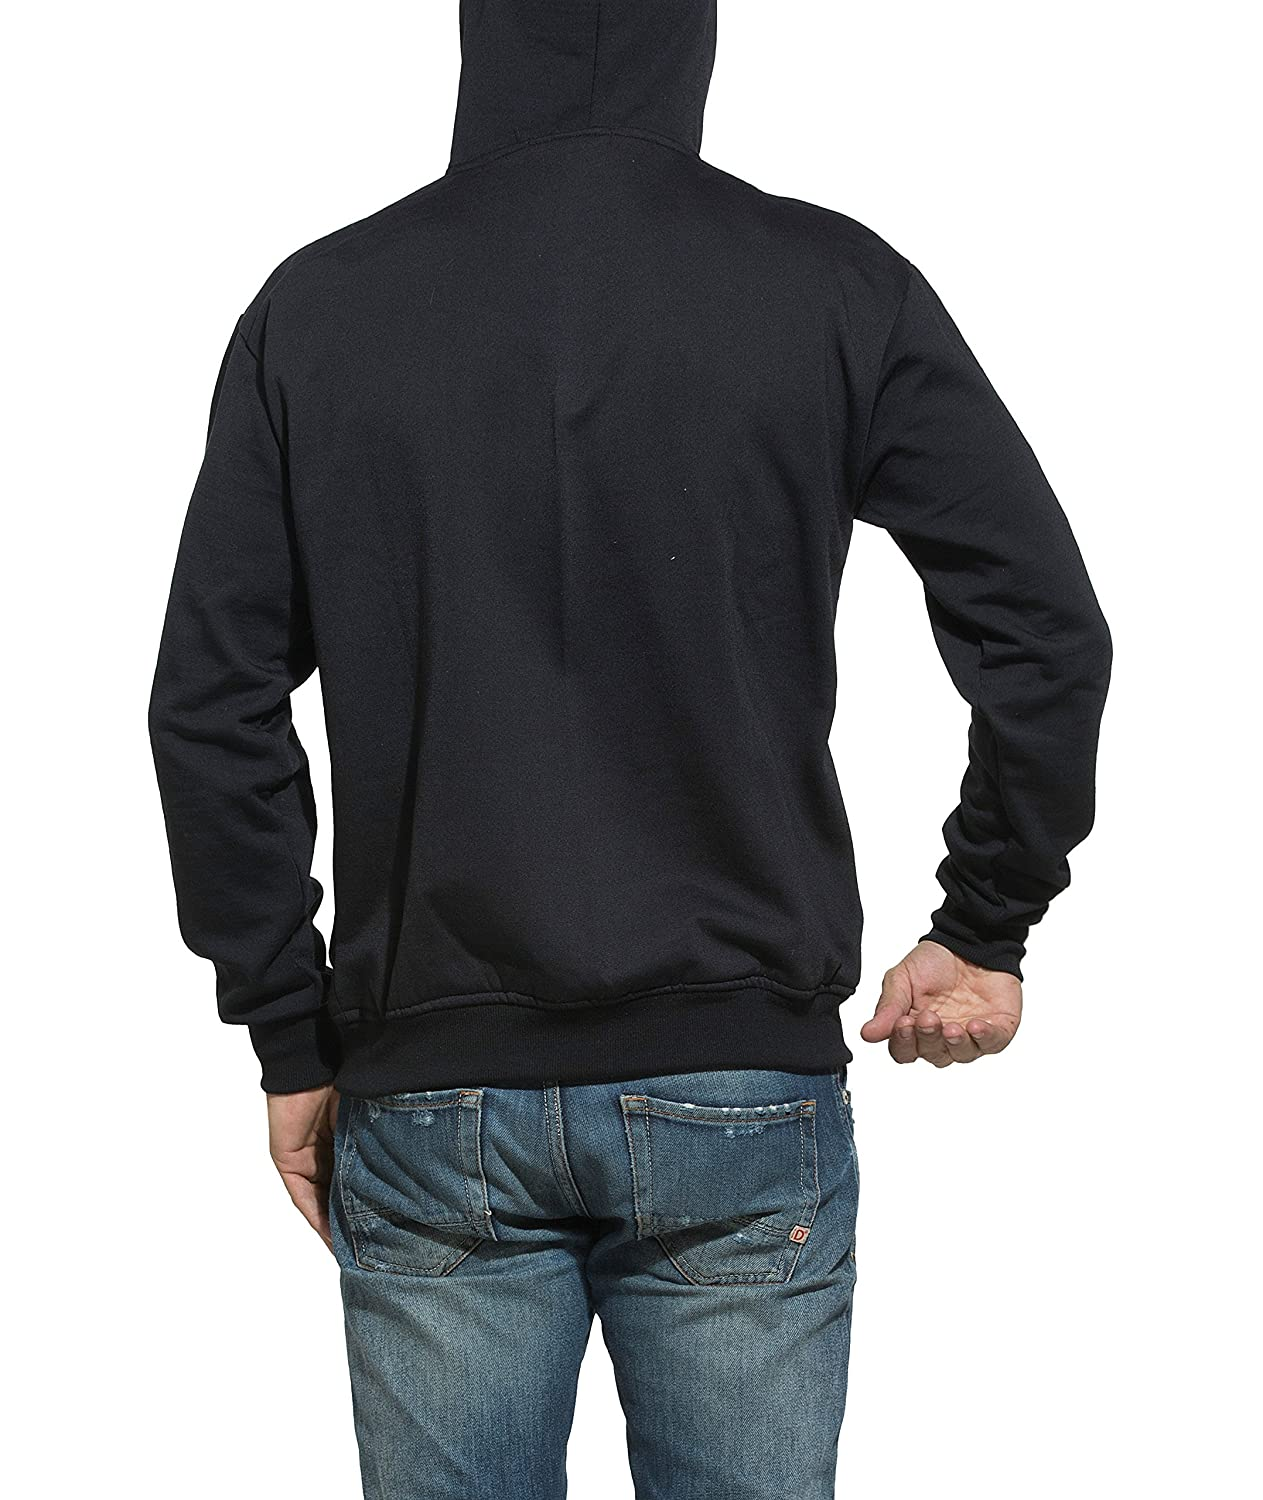 dcf854d079a Alan Jones Clothing Men s Cotton Hooded Sweatshirt  Amazon.in  Clothing    Accessories